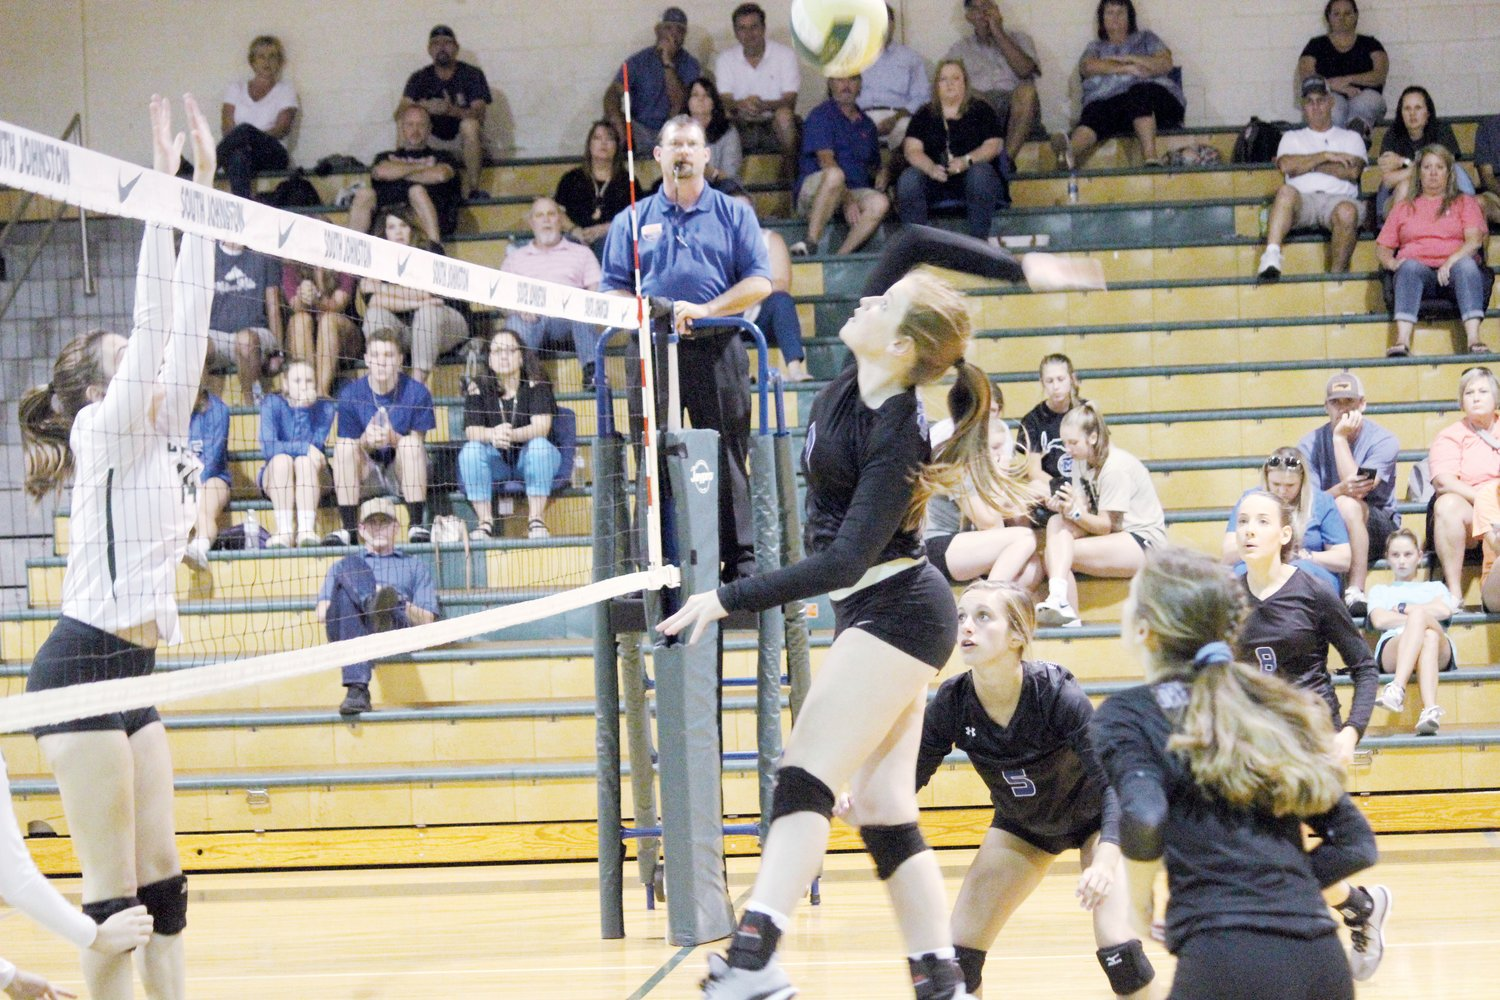 Allison Bellflowers rises for one of her eight kills. The Midway junior's performance was one of the bright spots in the Raiders' loss at South Johnston on Tuesday.